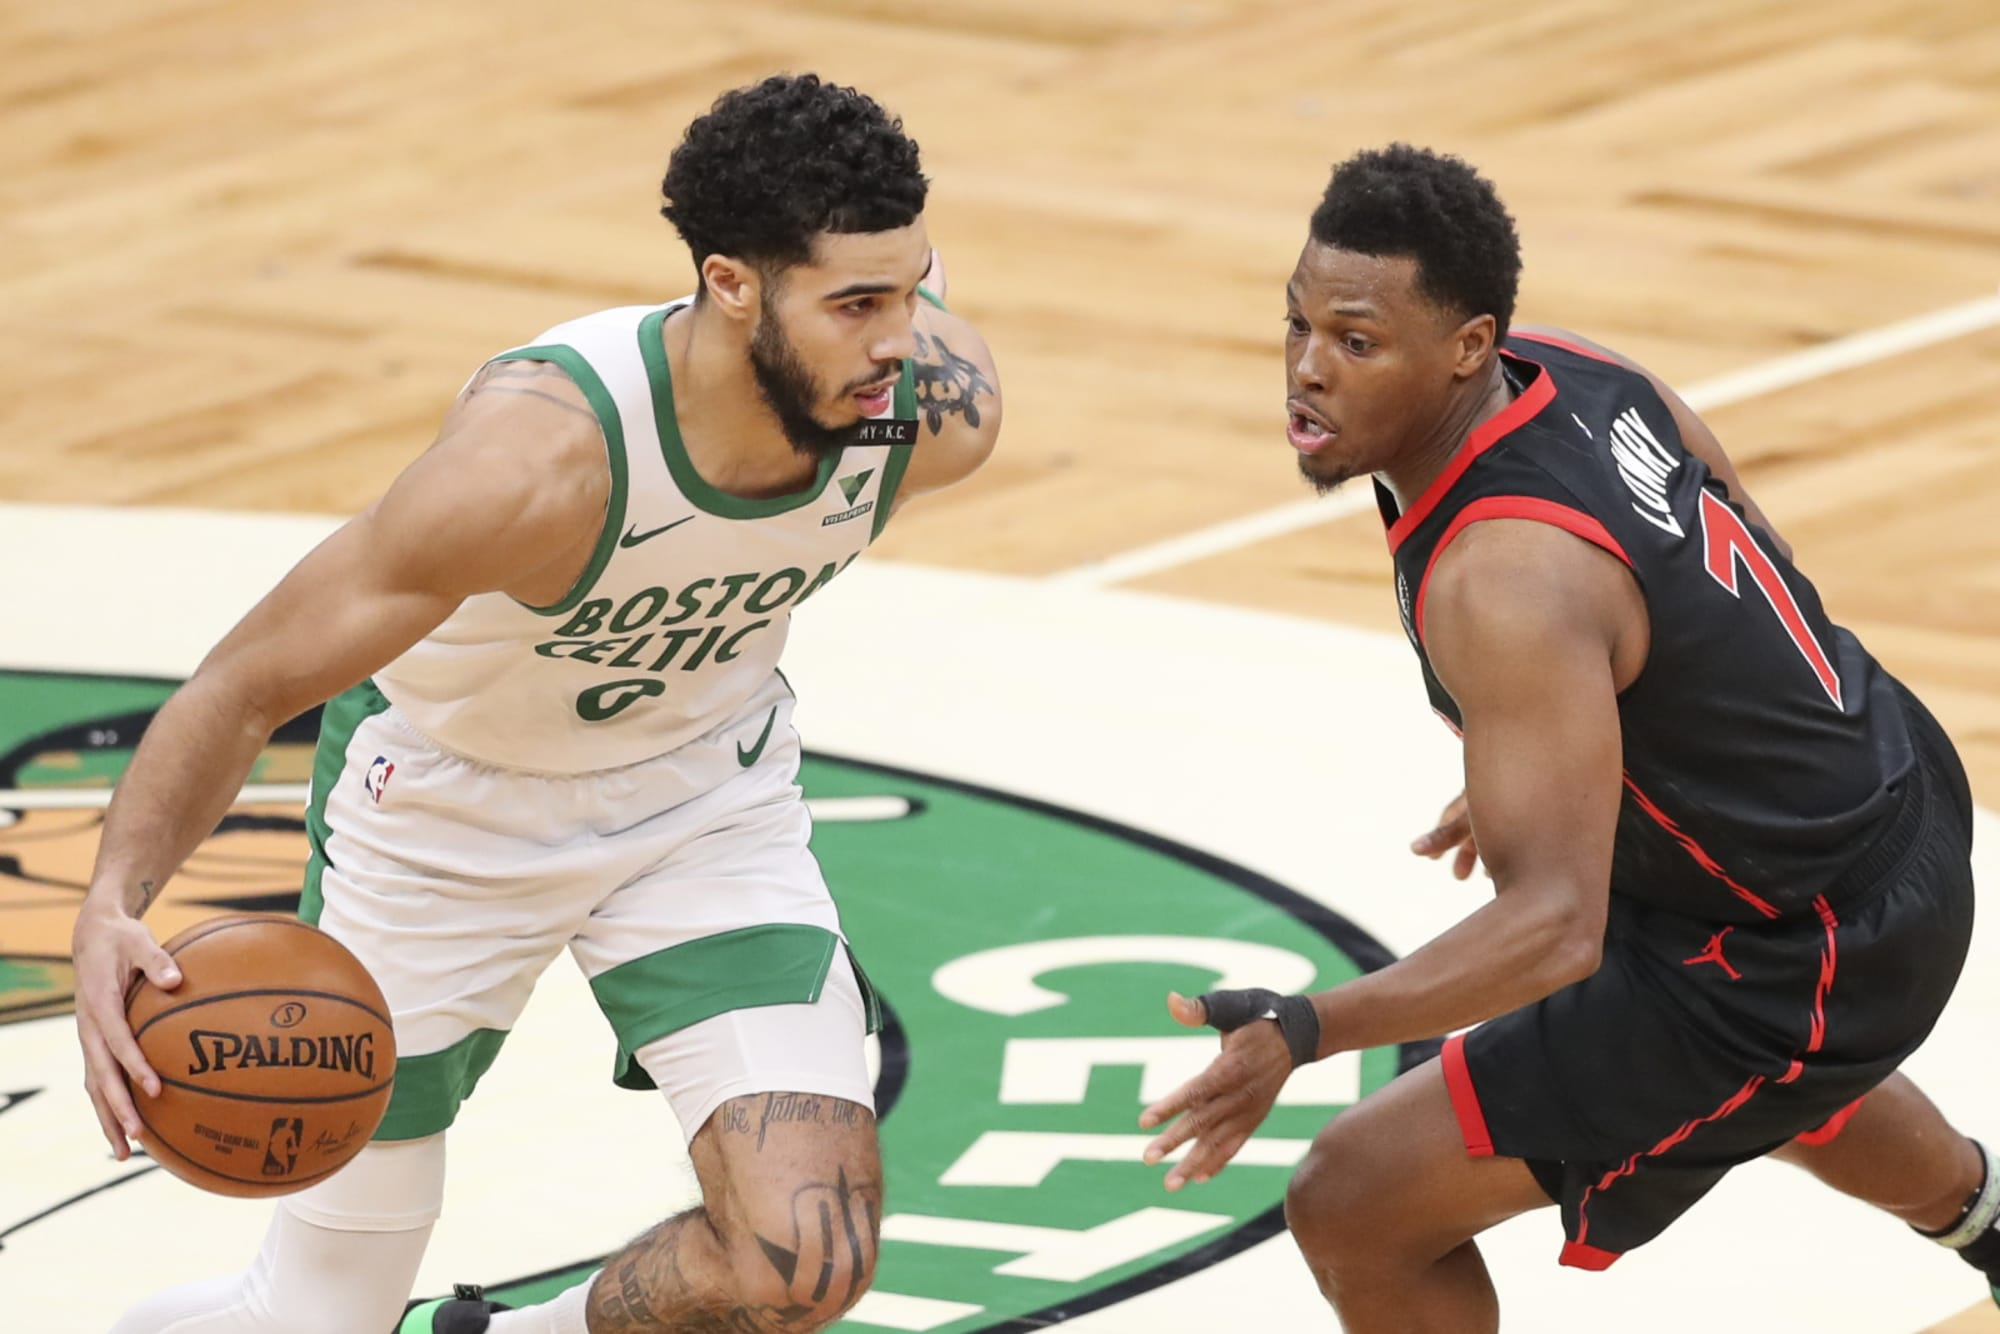 1 lesson the Toronto Raptors can learn from the Celtics after elimination